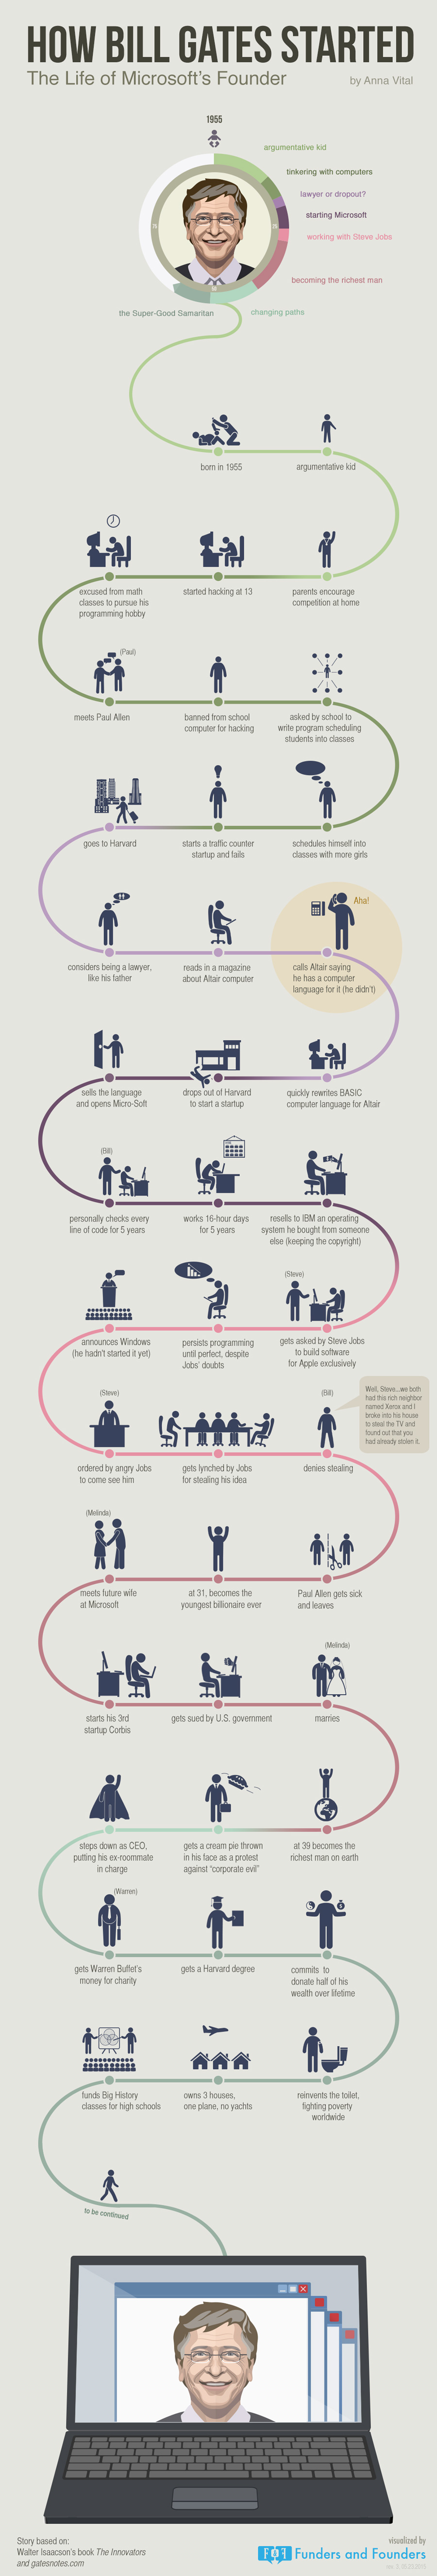 how-bill-gates-started-microsoft-founder-infographic